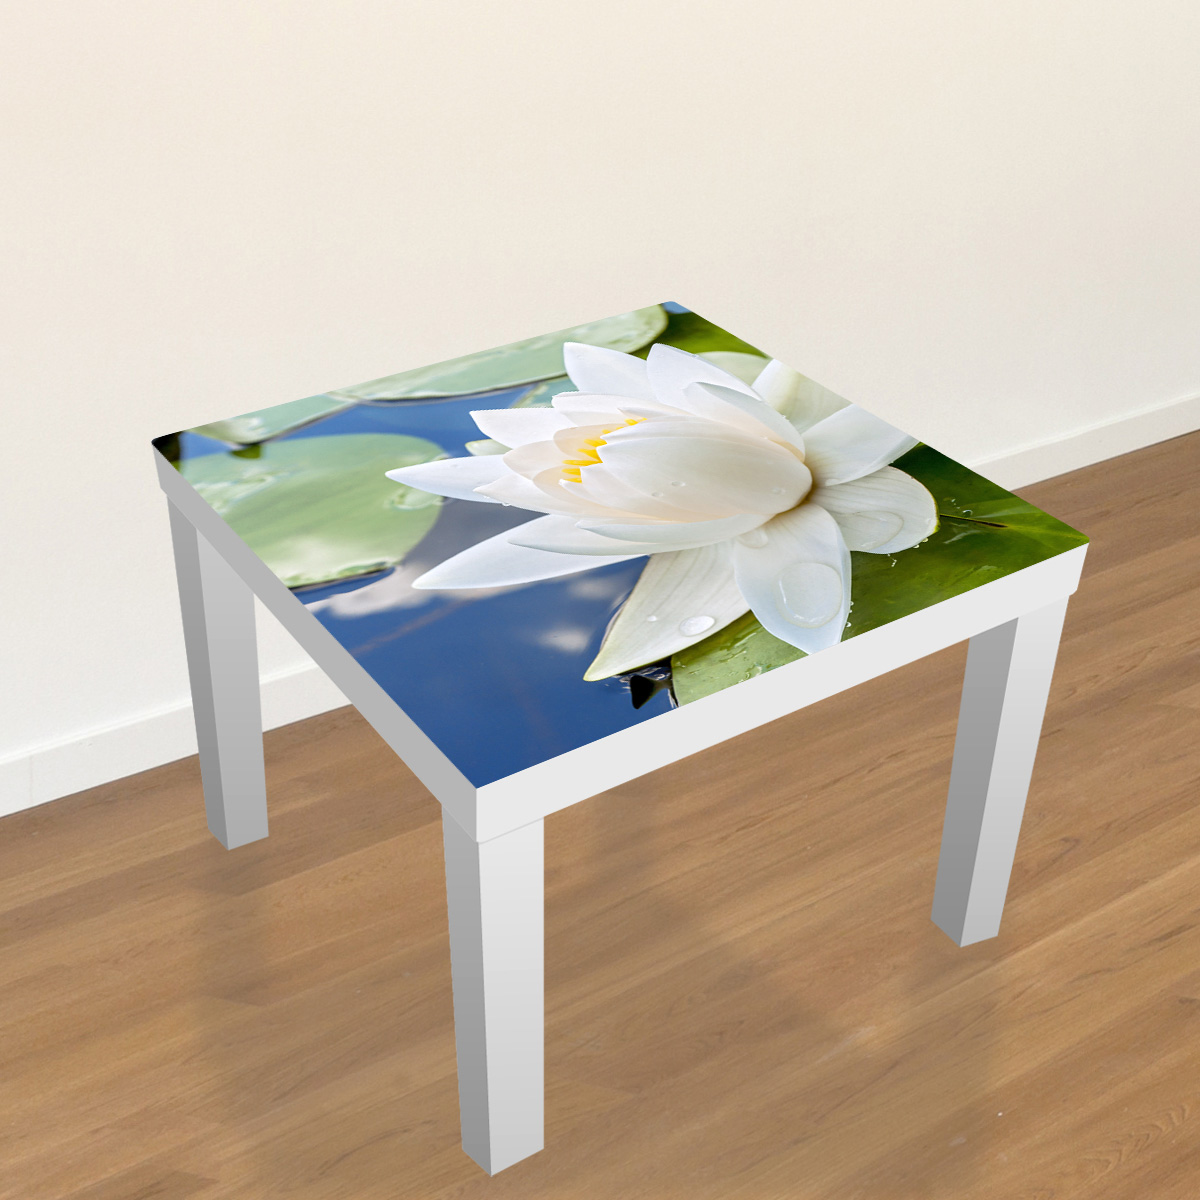 Stickers meubles ikea stickers meubles ikea n nuphar ambiance - Stickers ikea meuble ...